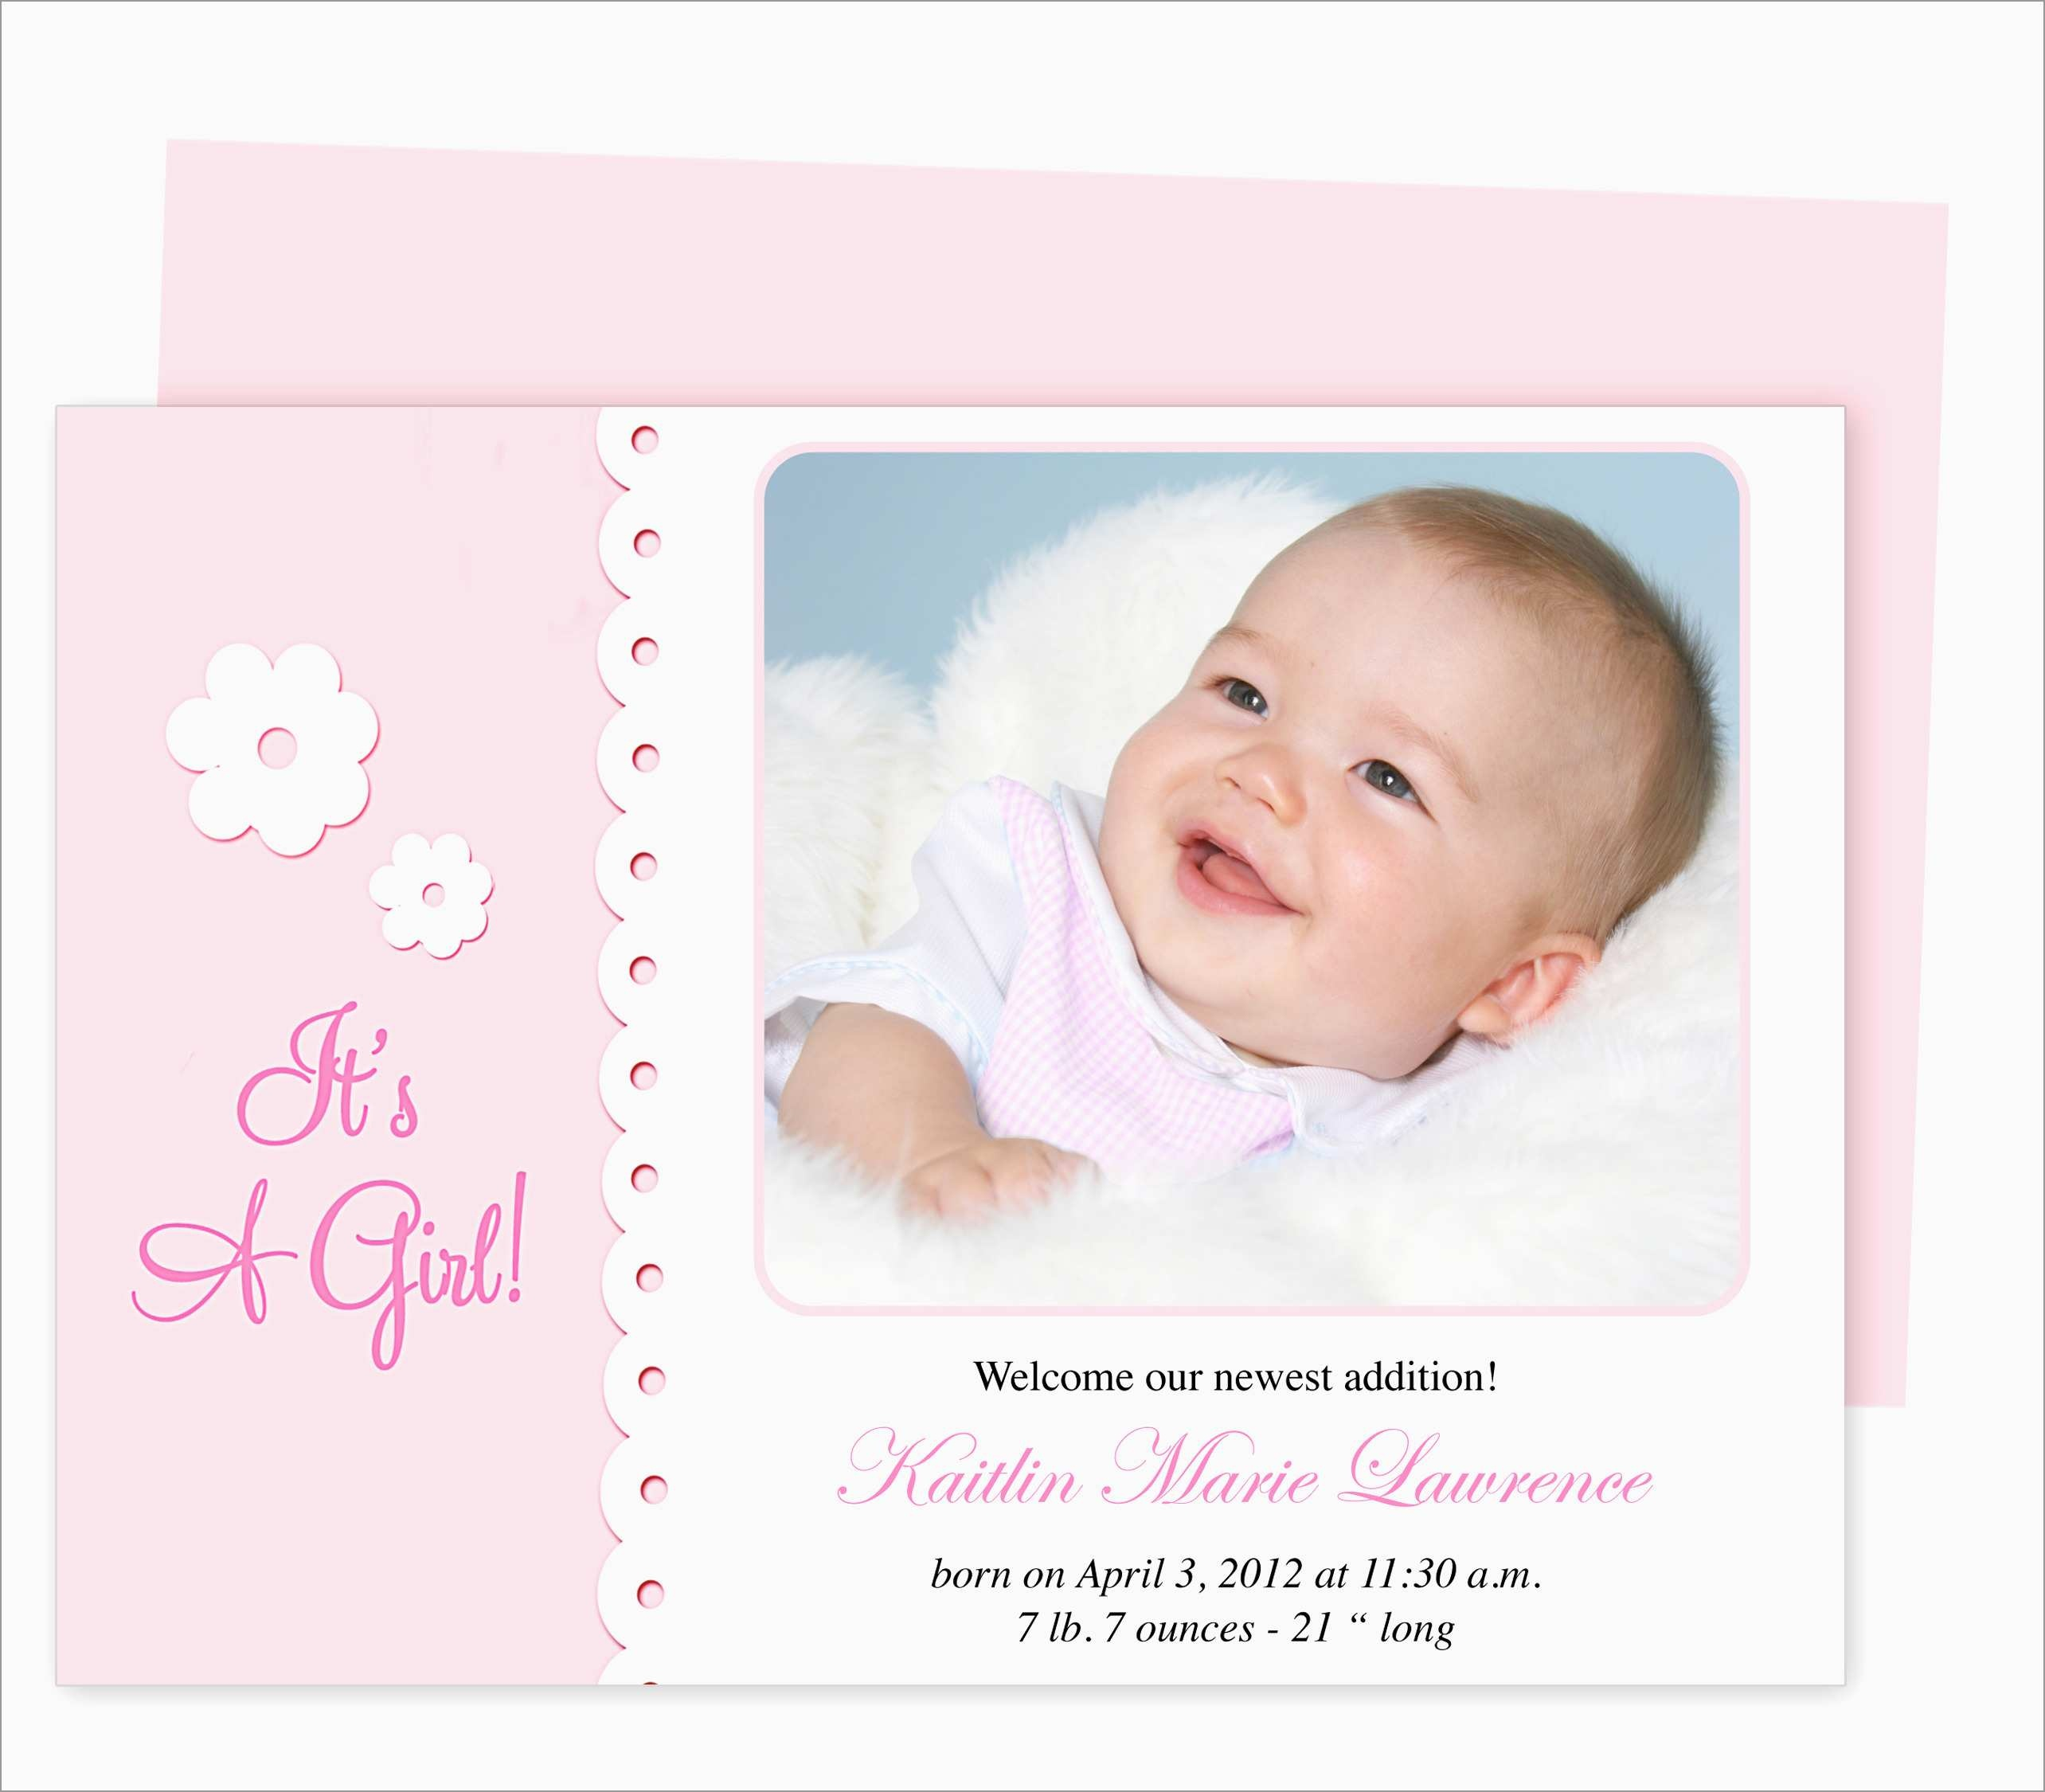 Luxury Birth Announcement Template Free Printable | Best Of Template - Free Printable Baby Birth Announcement Cards